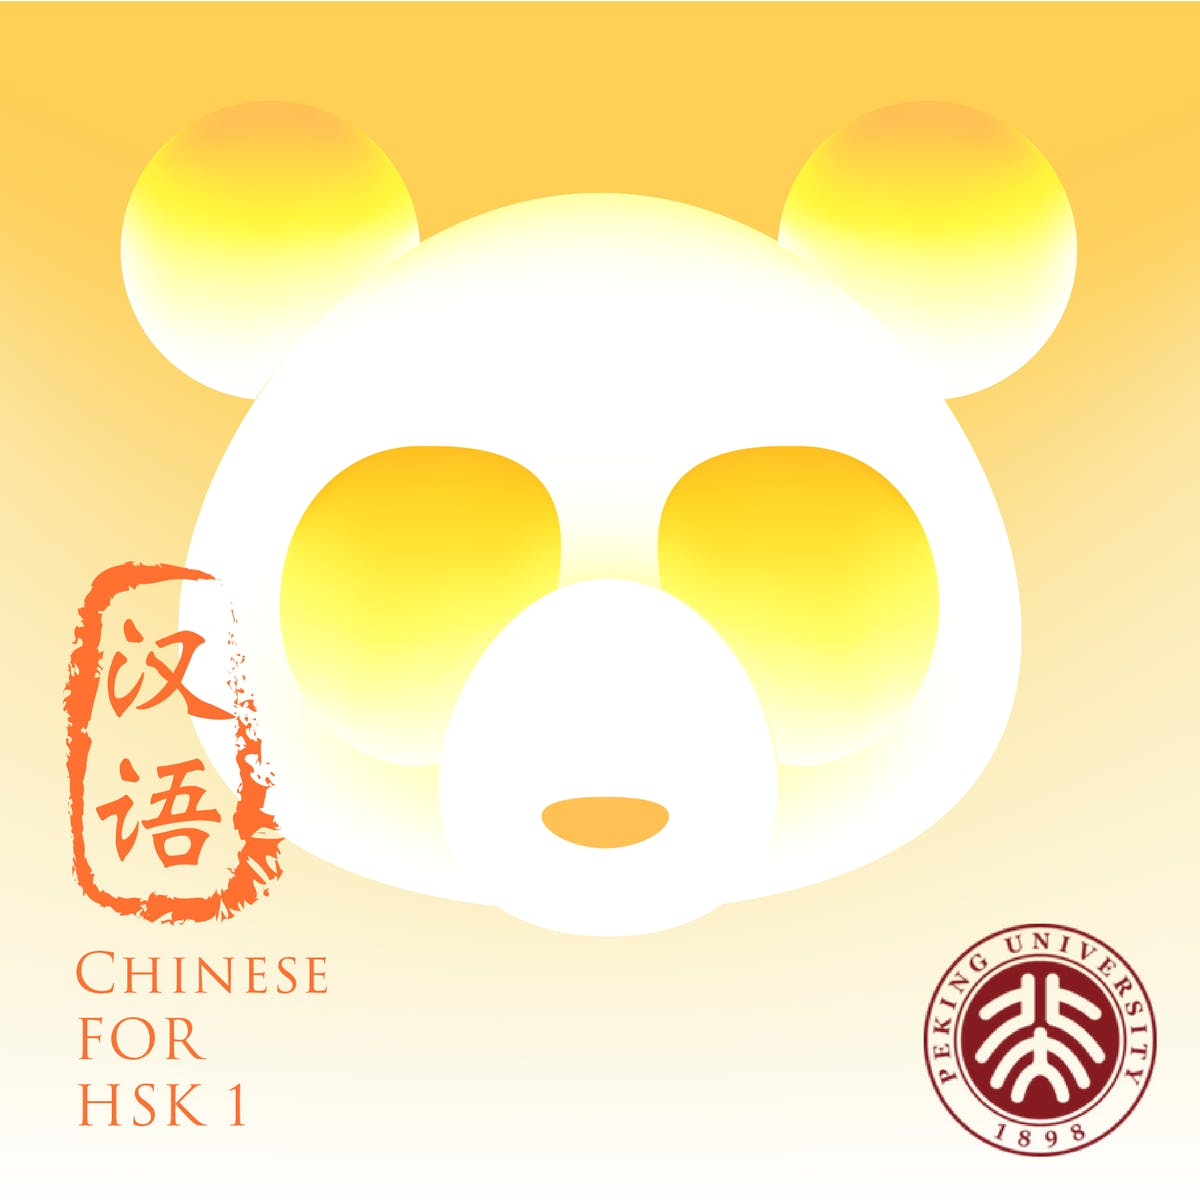 Chinese for HSK 1